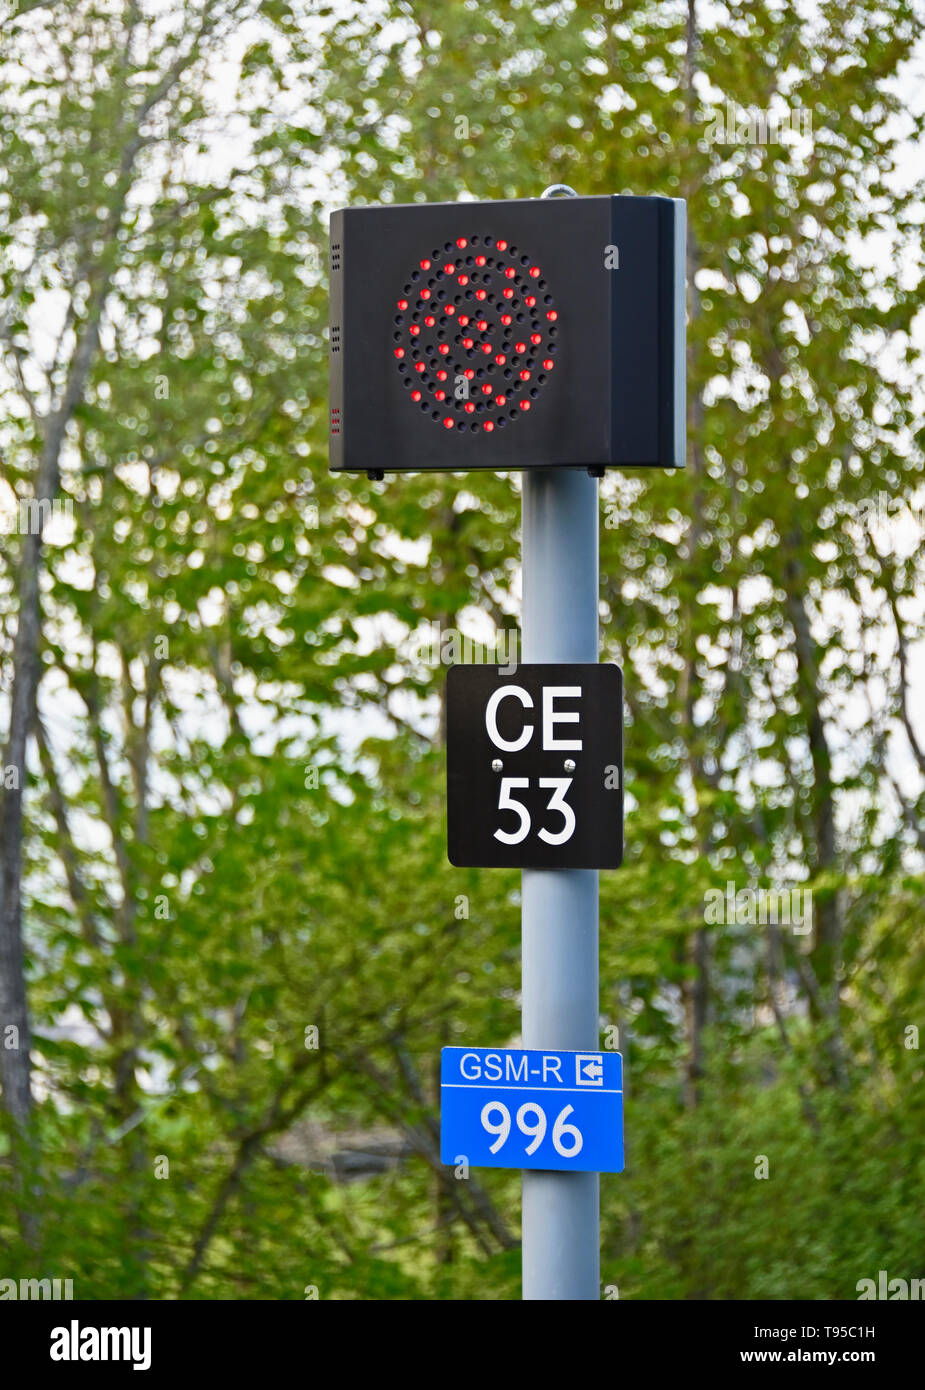 united-kingdom-railway-signalling-colour-light-signal-red-signal-identification-plate-and-gsm-r-alias-plate-oxenholme-station-cumbria-uk-T95C1H.jpg